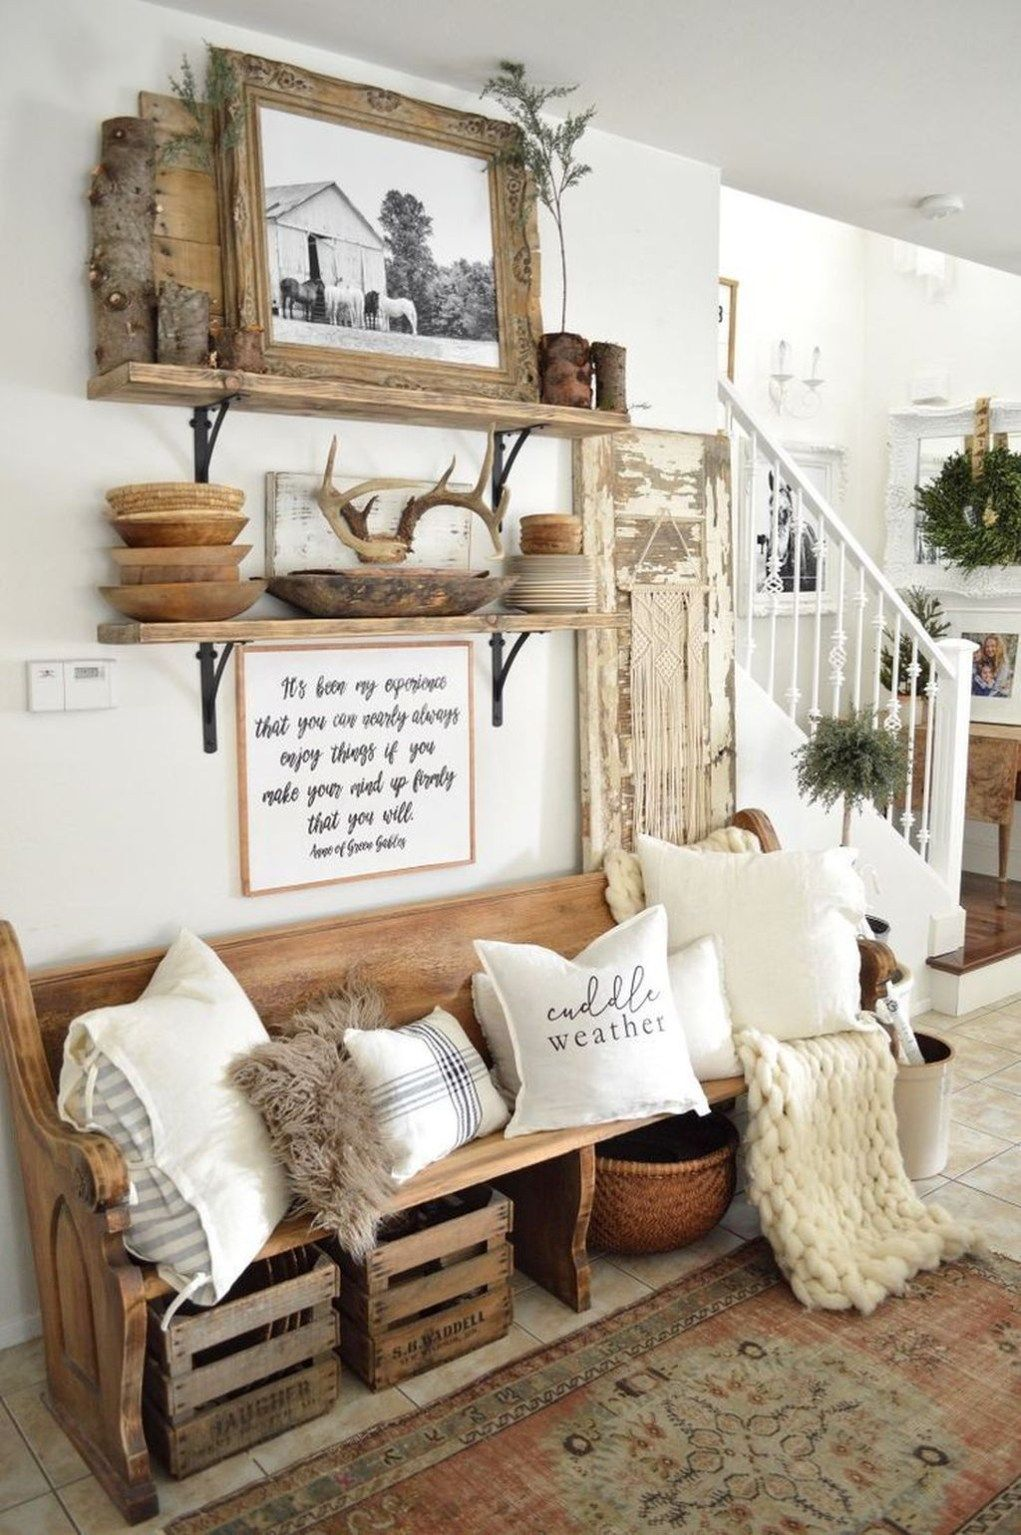 72 Stunning Traditional Farmhouse Decor Ideas For Your Entire Hou 29 Farmhouse Decor Living Room Farm House Living Room Farmhouse Style Living Room